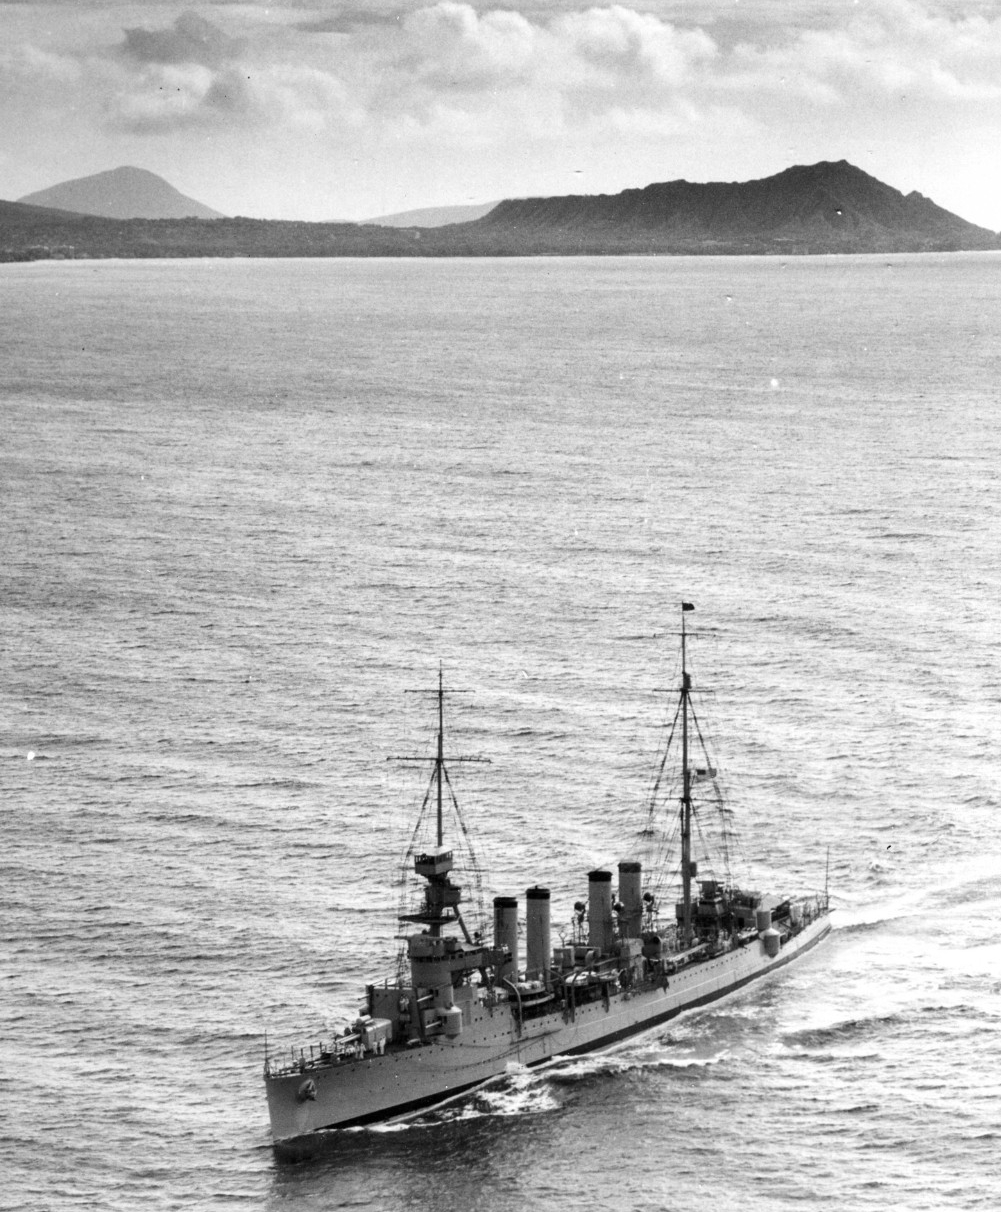 As temporary flagship (she flies a four-star flag at the main) for Adm. Richard H. Leigh, off Diamond Head, Honolulu, T.H., 20 October 1932. Close investigation of the image reveals a black-hulled admiral's barge in skids to port of her no.2 stack. (U.S. Navy Photograph 80-CF-2142, National Archives and Records Administration, Still Pictures Branch, College Park, Md.)